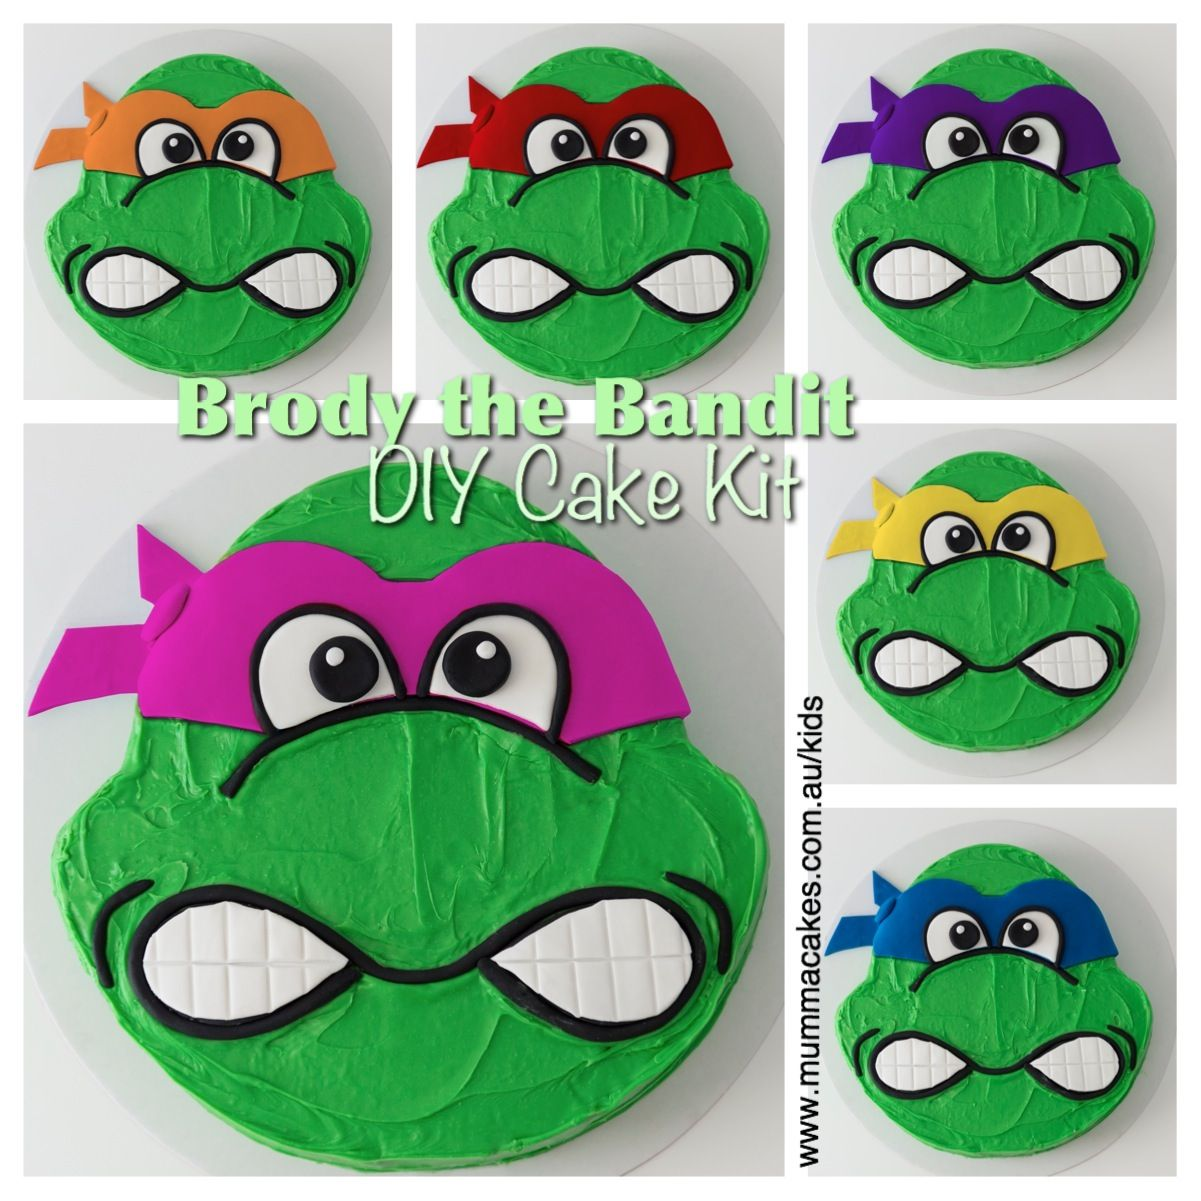 Brody the Bandit DIY Cake Kit! You choose the mask colour and then we supply everything you need to create this awesome cake! www.mummacakes.com.au/kids